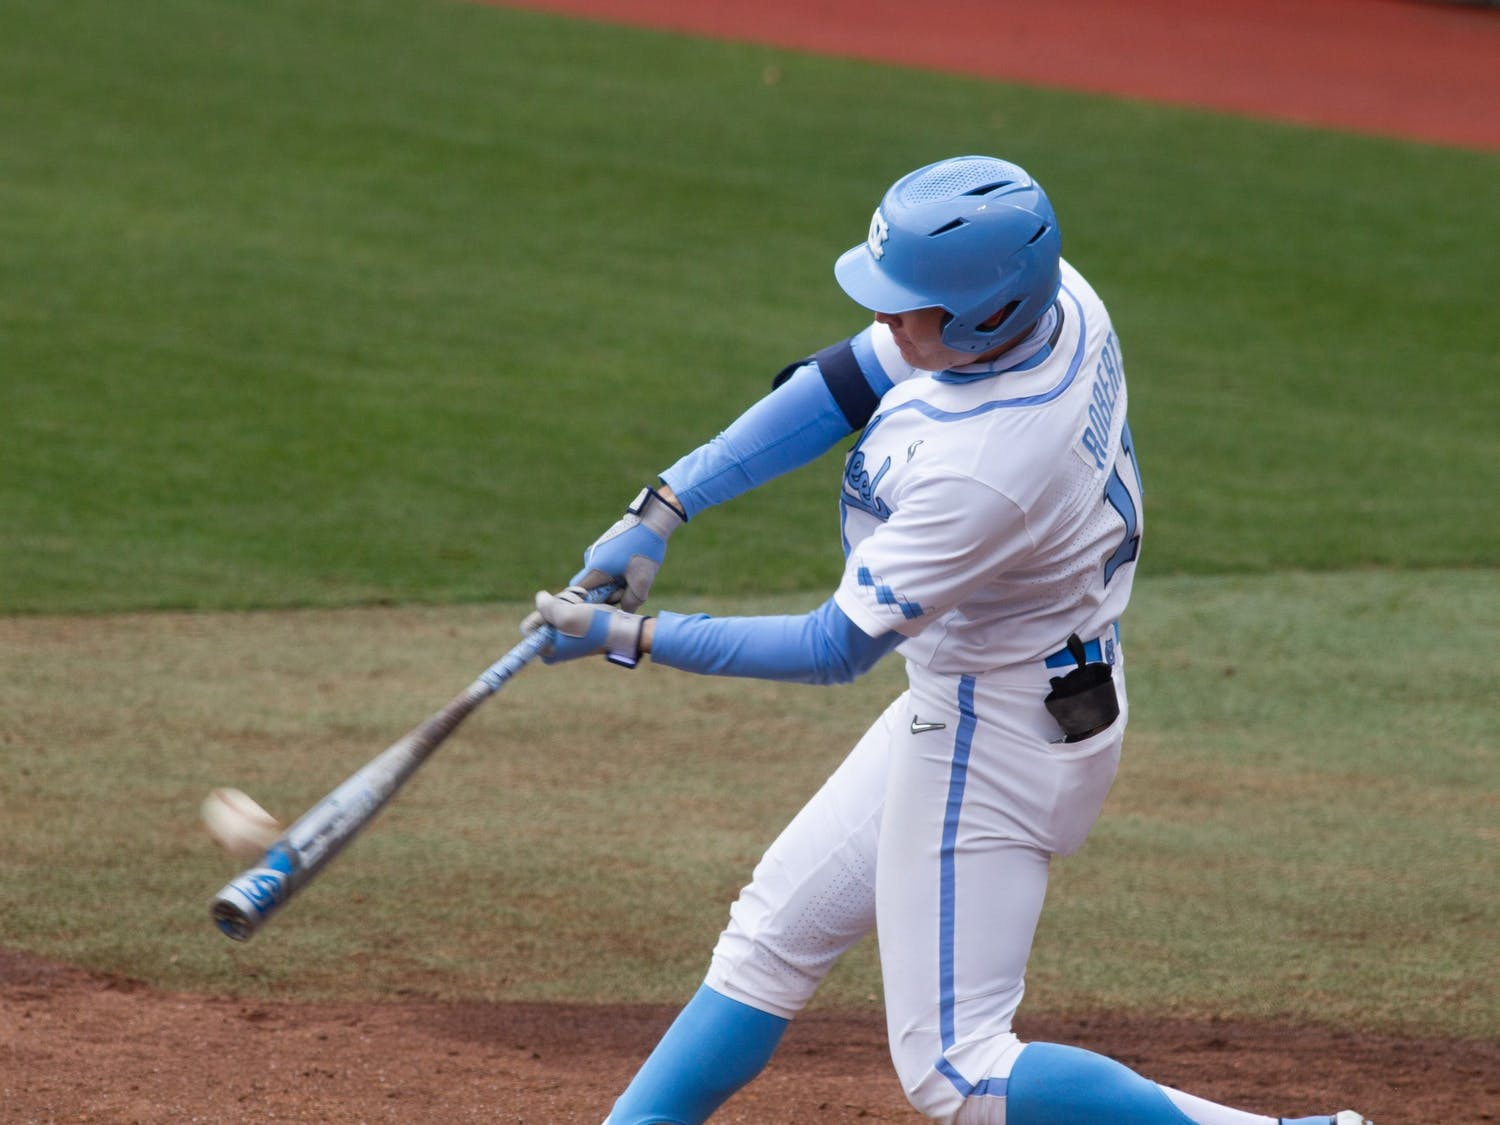 UNC sophomore outfielder Caleb Roberts hits his first of two home runs during Carolina's 8-1 season-opening victory over James Madison at Boshamer Stadium, Feb. 19, 2021.